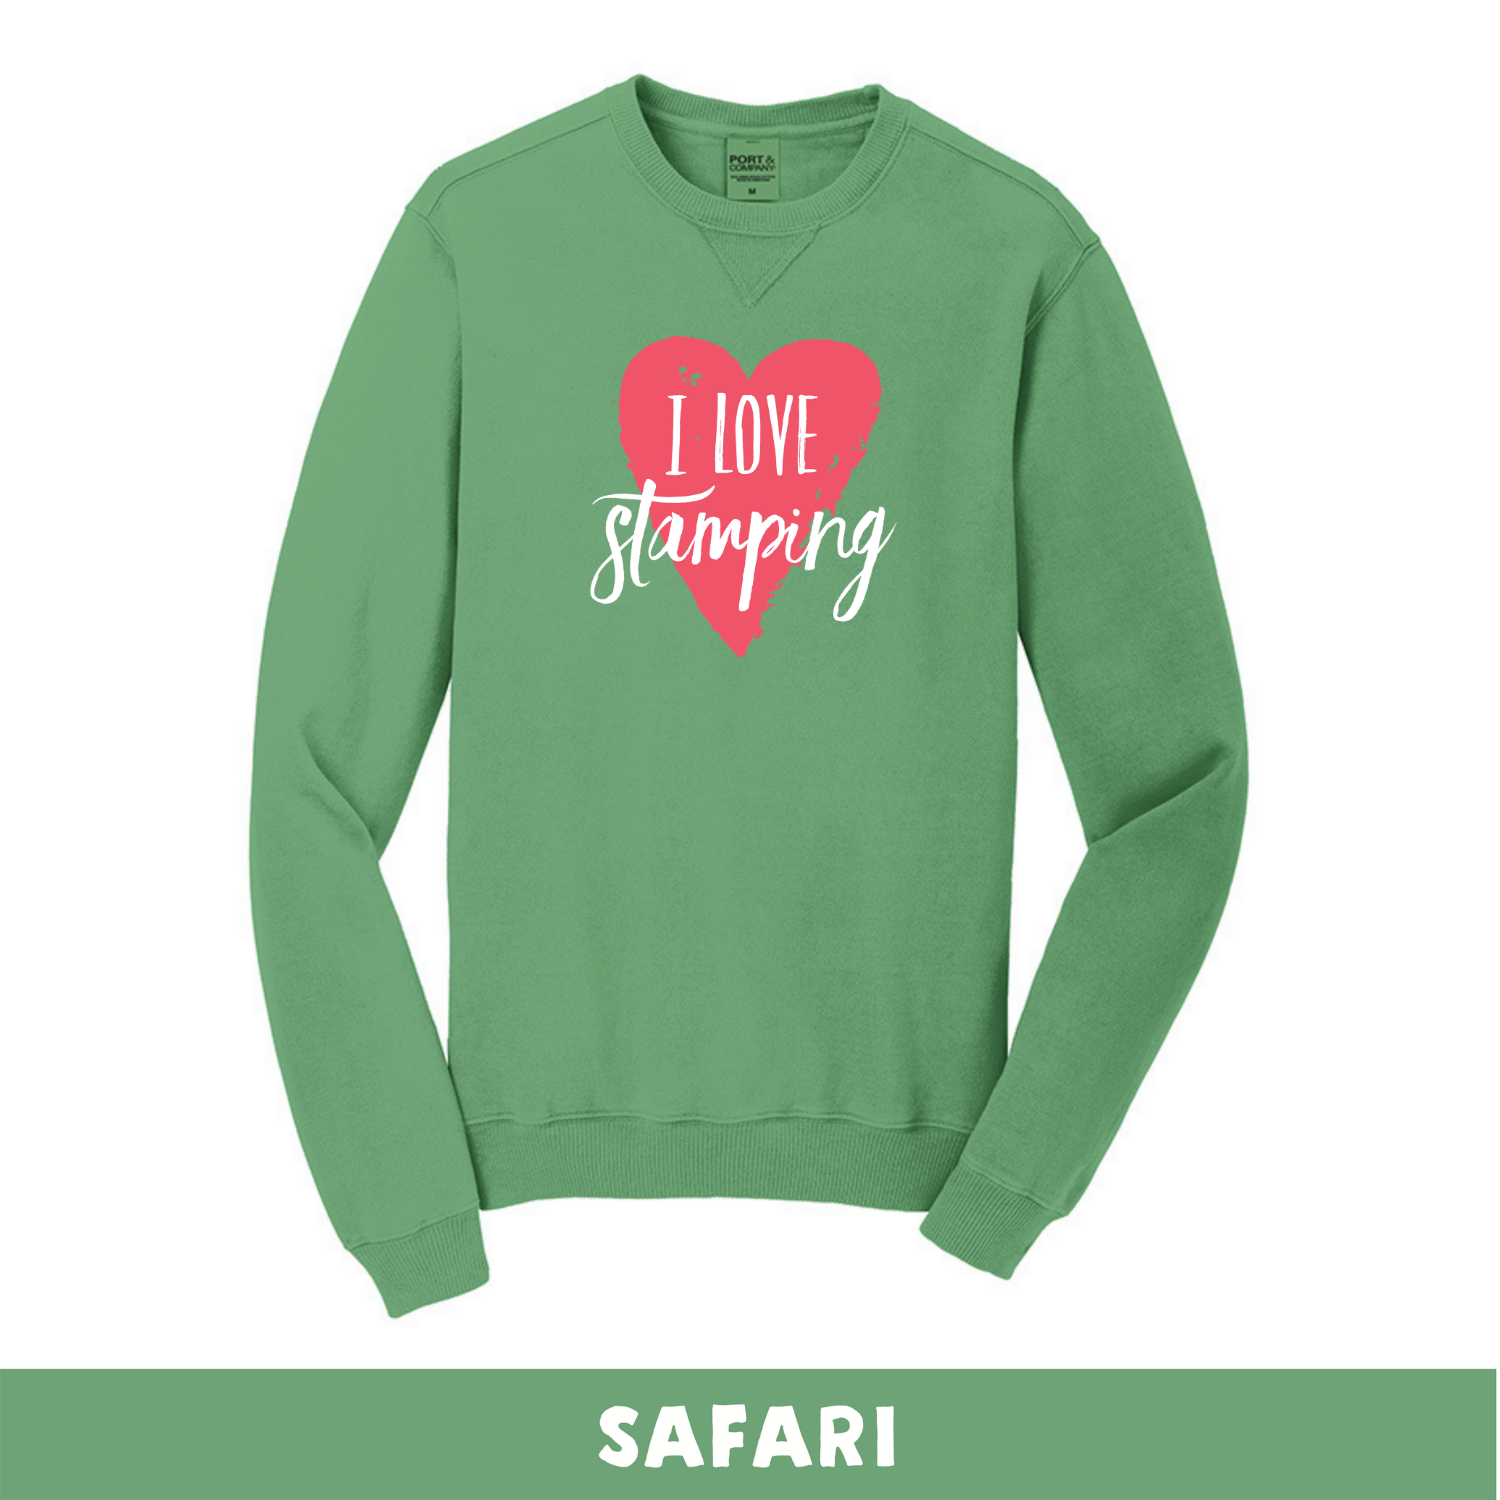 Safari - Beach Wash Unisex Sweatshirt - I Love Stamping